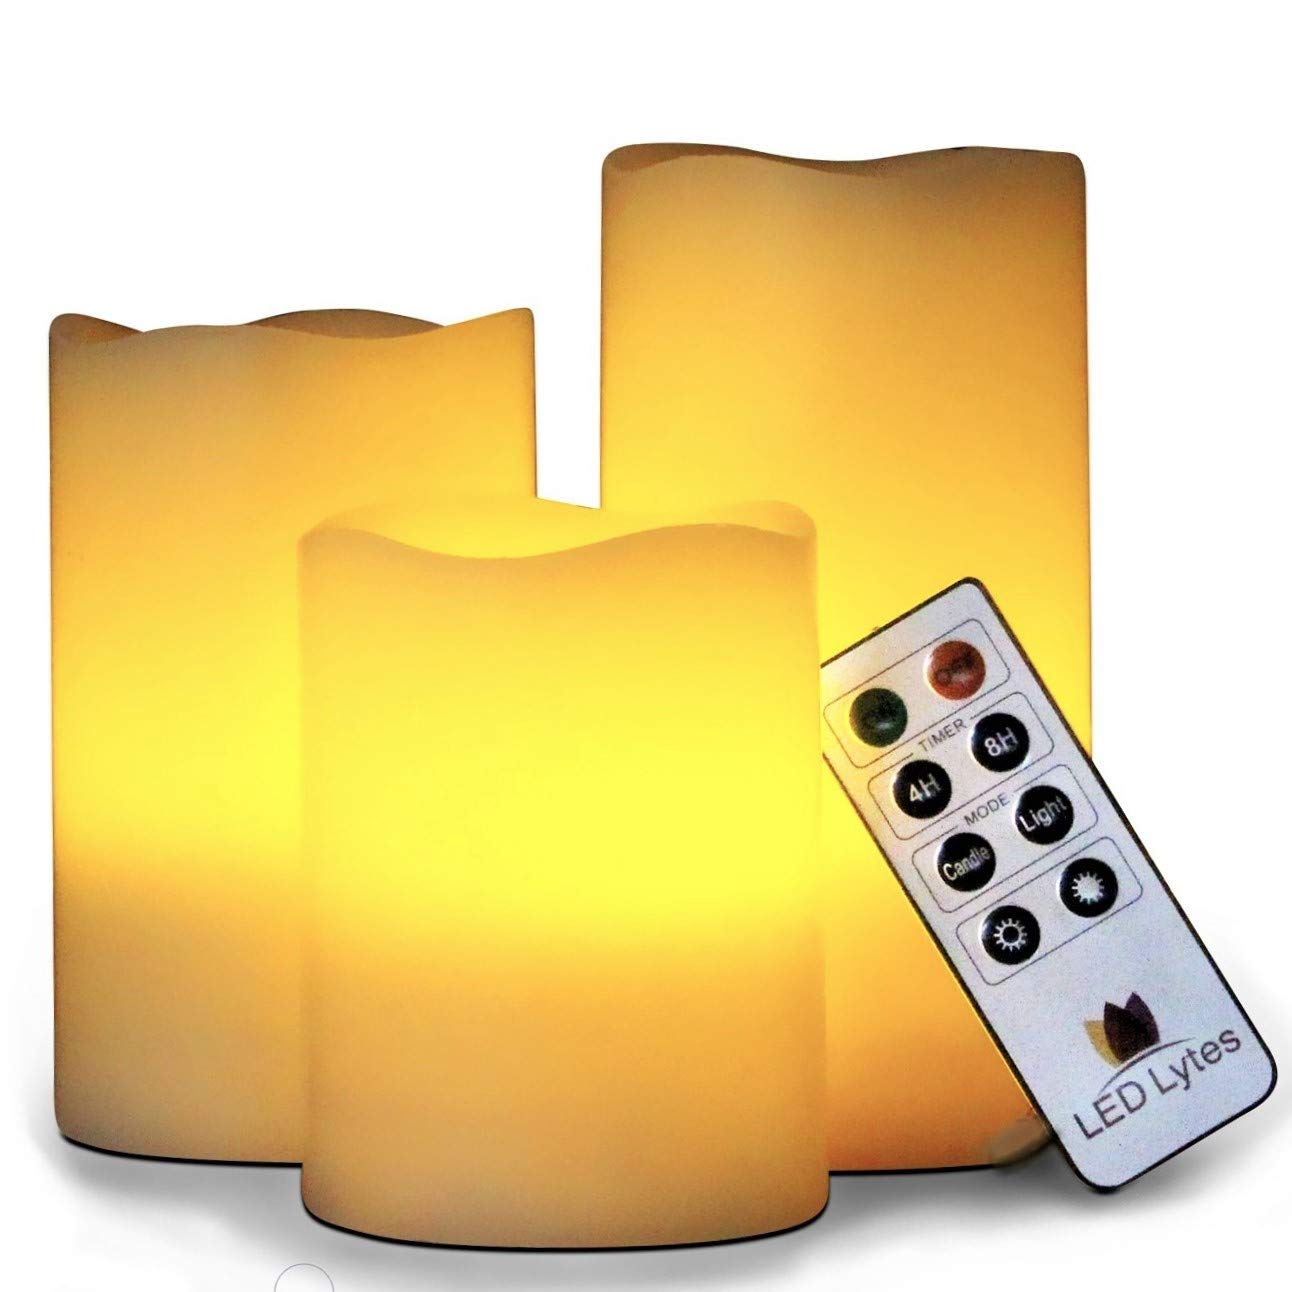 LED Lytes Flameless Candles Set of 3 Ivory Wax Flickering Amber Yellow Flame, Auto-Off Timer Remote Control Fake Battery Operated Candles